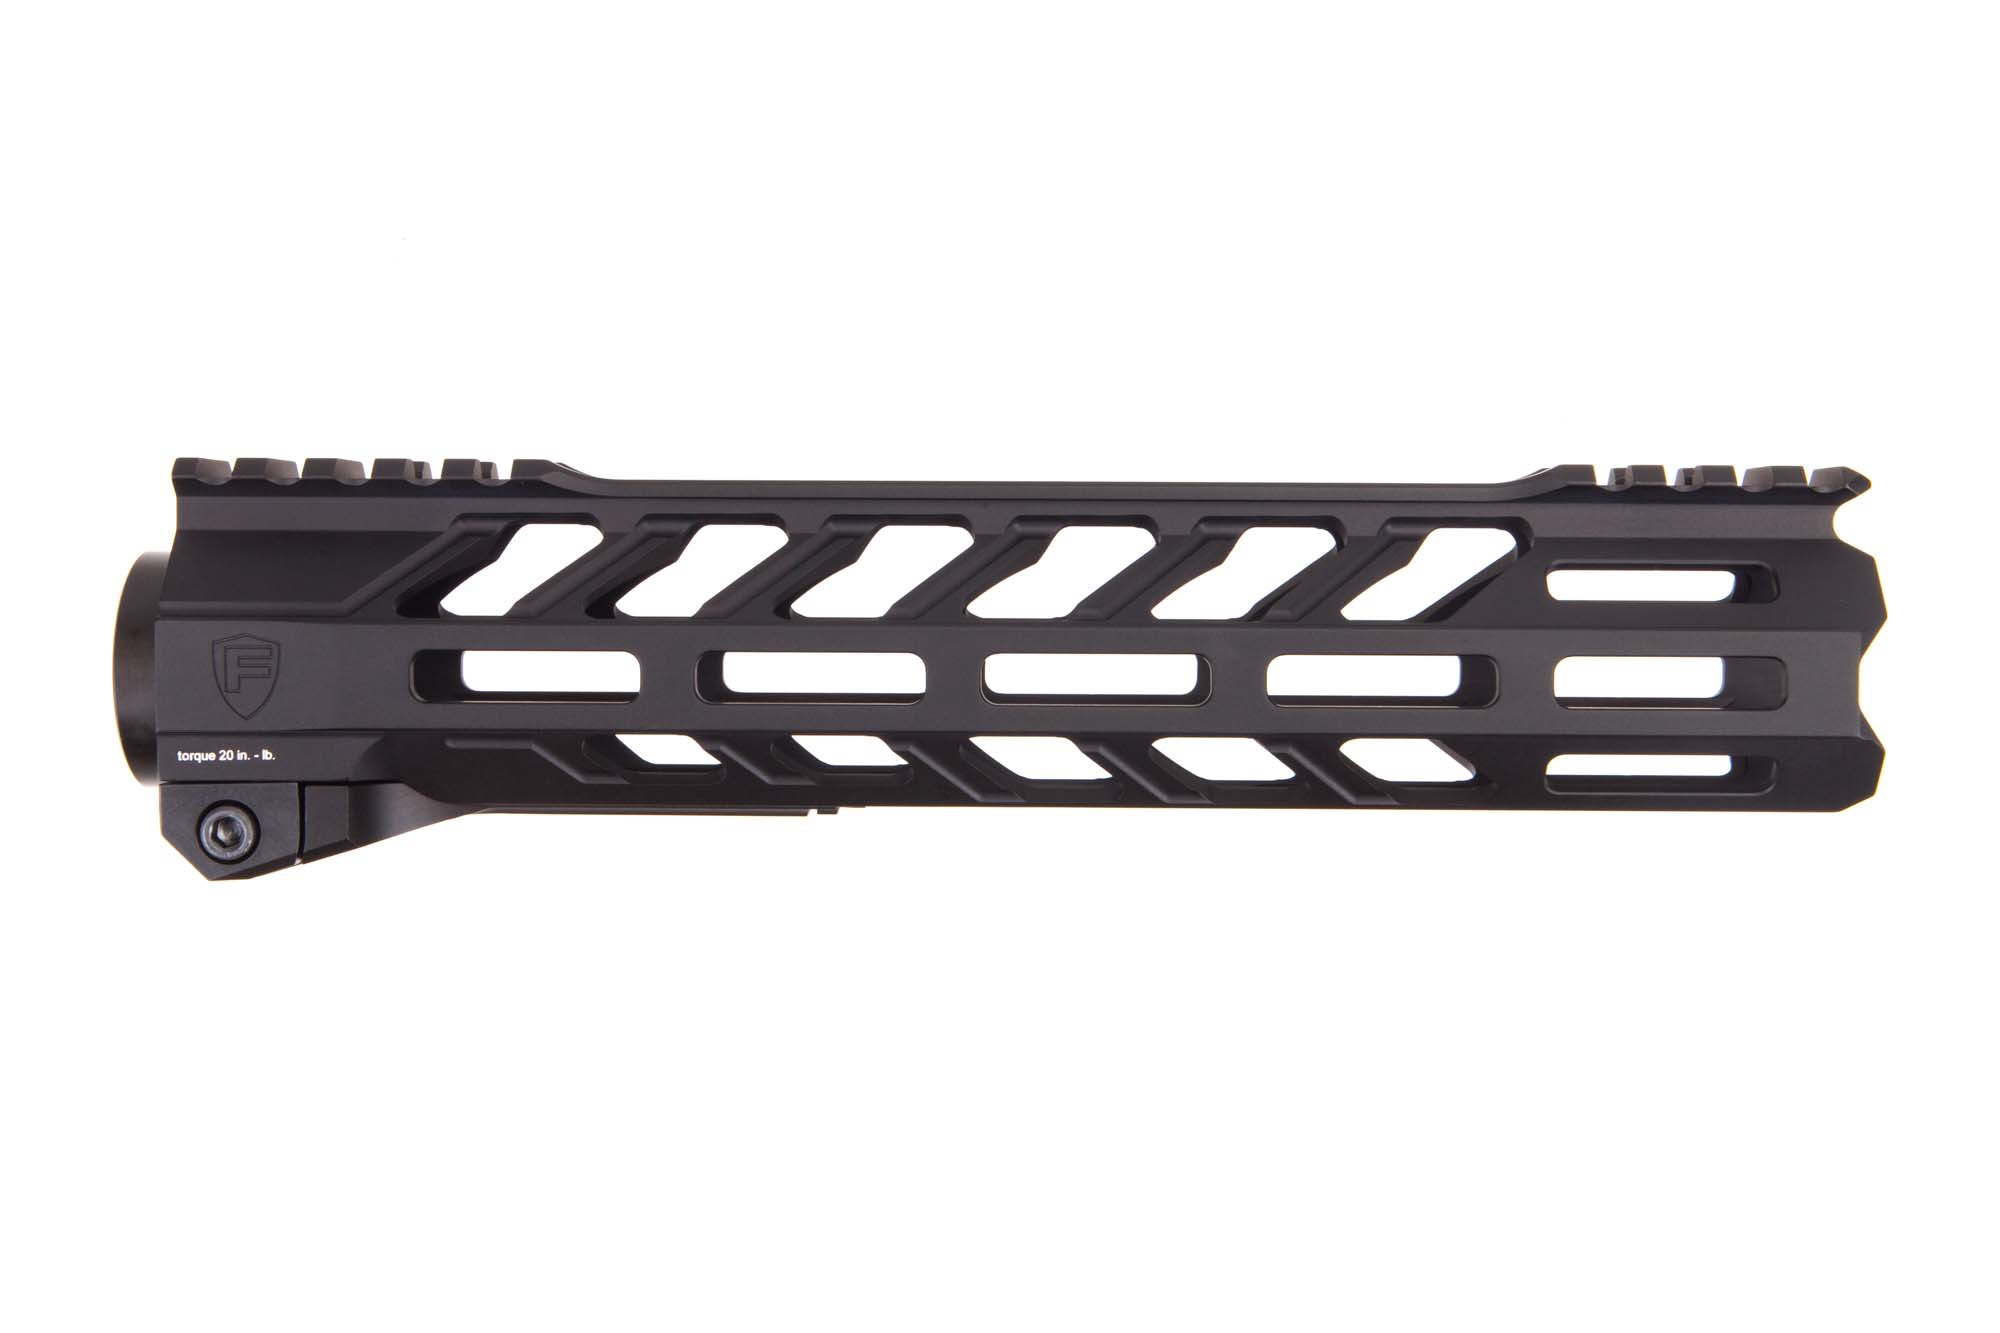 SWITCH™ AR15 MOD 2 Rail System - 9.6